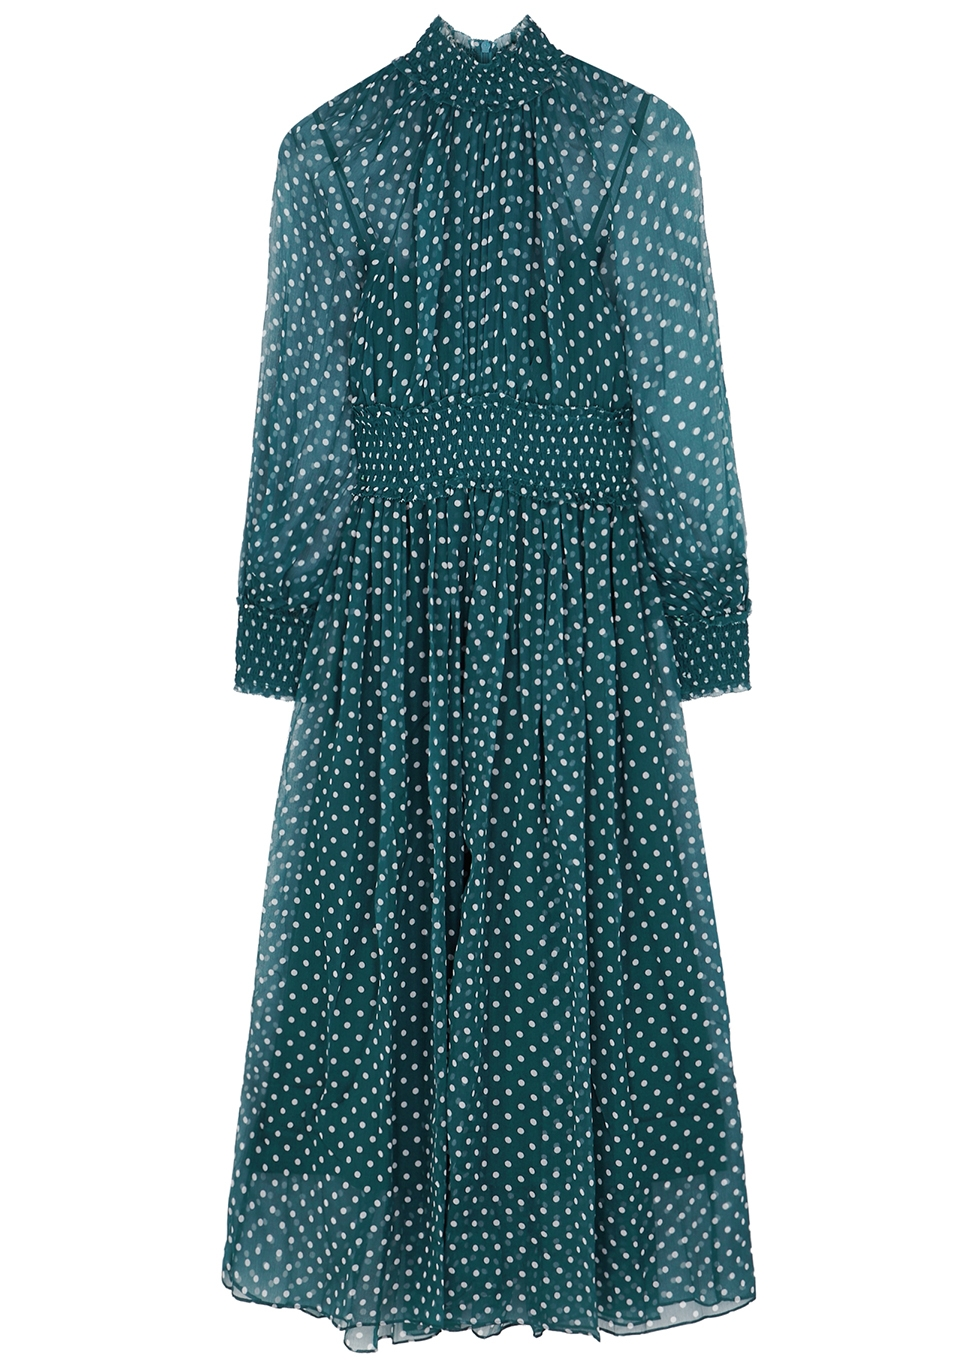 Moncur teal polka-dot silk dress - Zimmermann